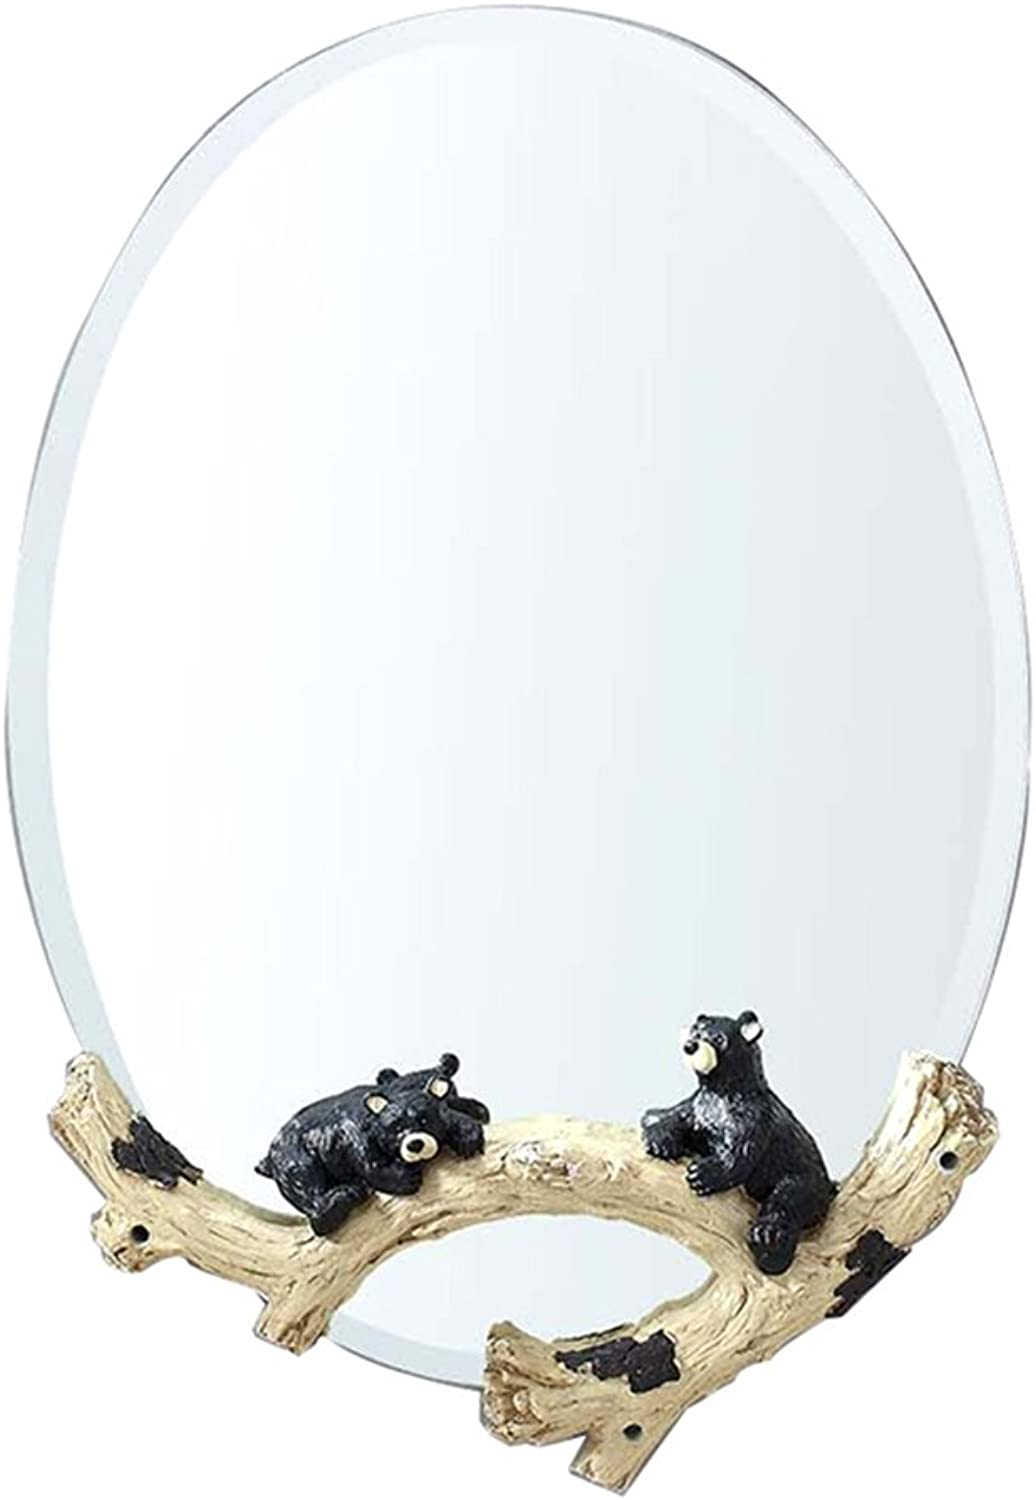 ZHBWJSH European Pastoral Bathroom Mirror Round Mirror Vanity Mirror Decorative Bathroom Mirror Wall Hanging Dressing Table Mirror Hanging Mirror (Size   75  50cm)